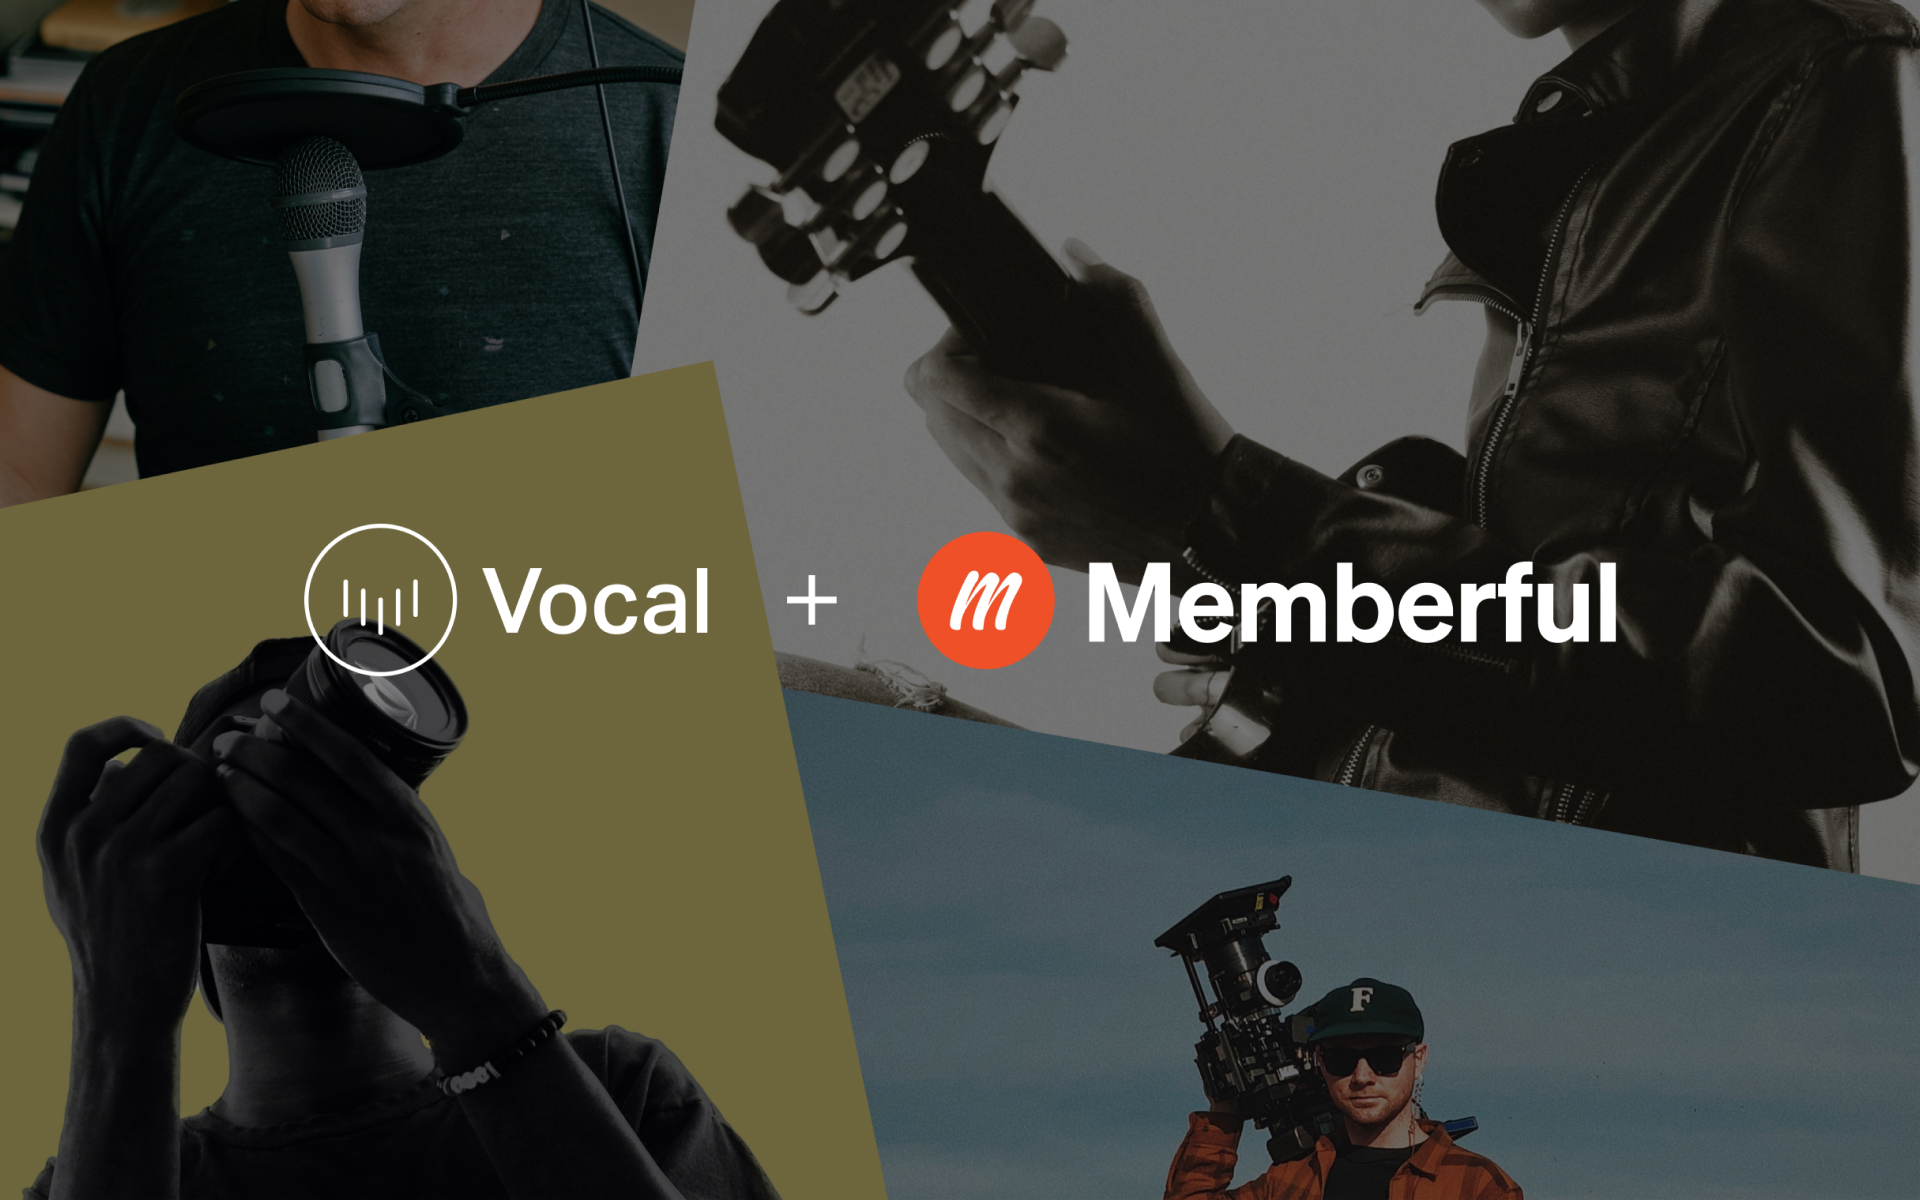 Creatd, Inc. Announces New Collaboration with Memberful, the Patreon-owned Membership Platform, Offering $32,500 Prize Pool for Creators